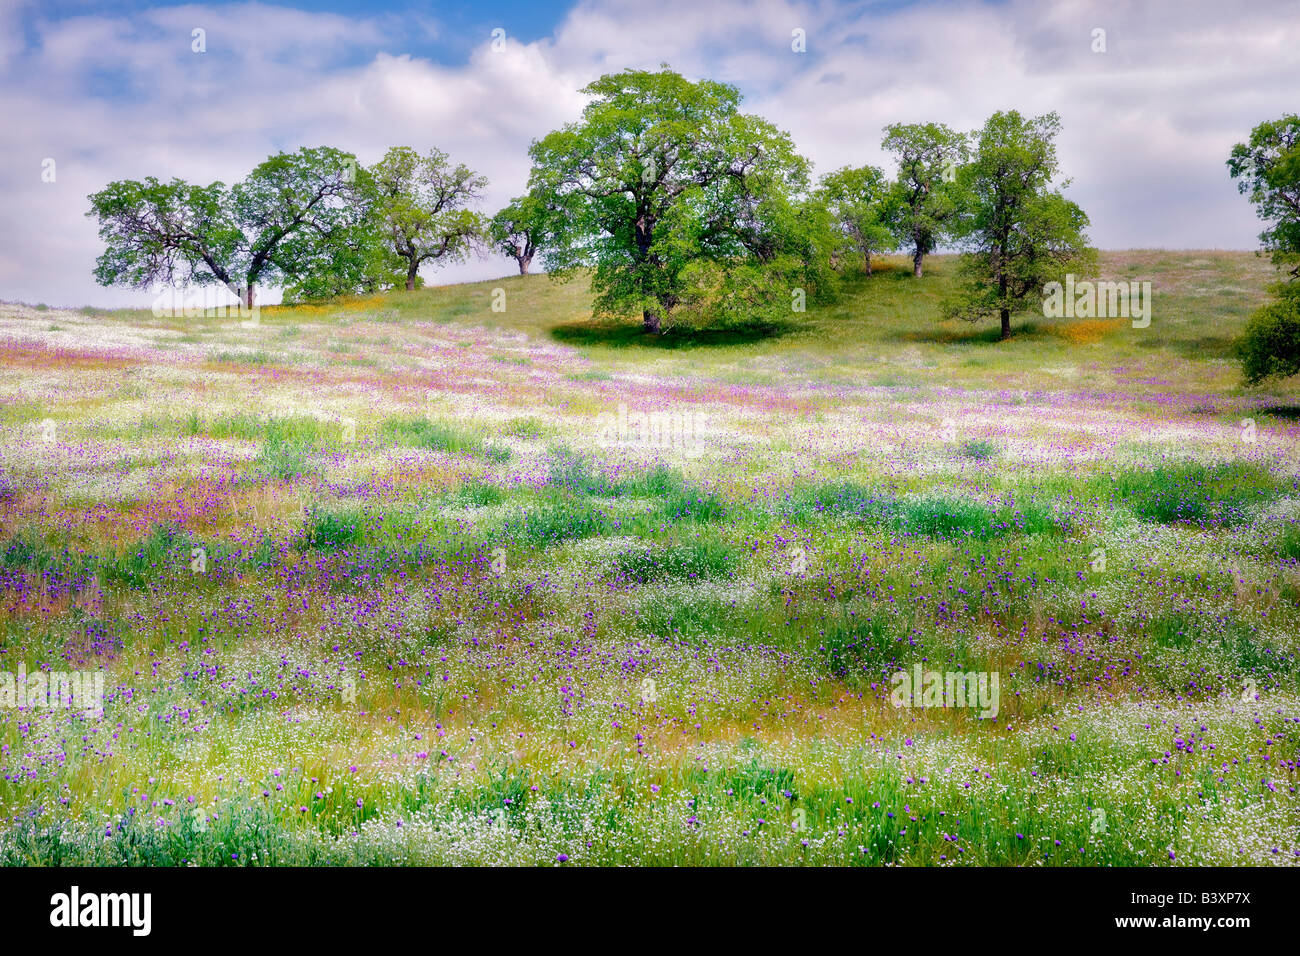 Mixture of wildflowers with oak trees Kern County California - Stock Image